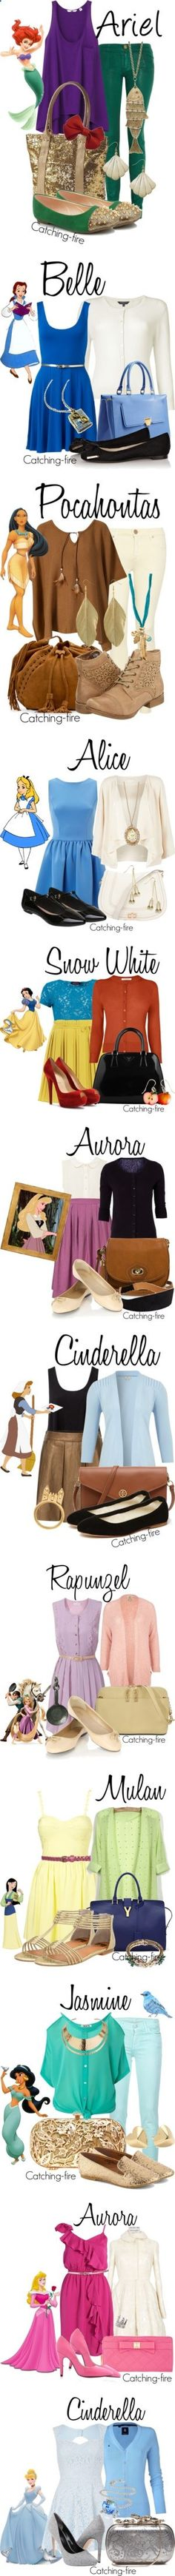 Disney inspired outfits!